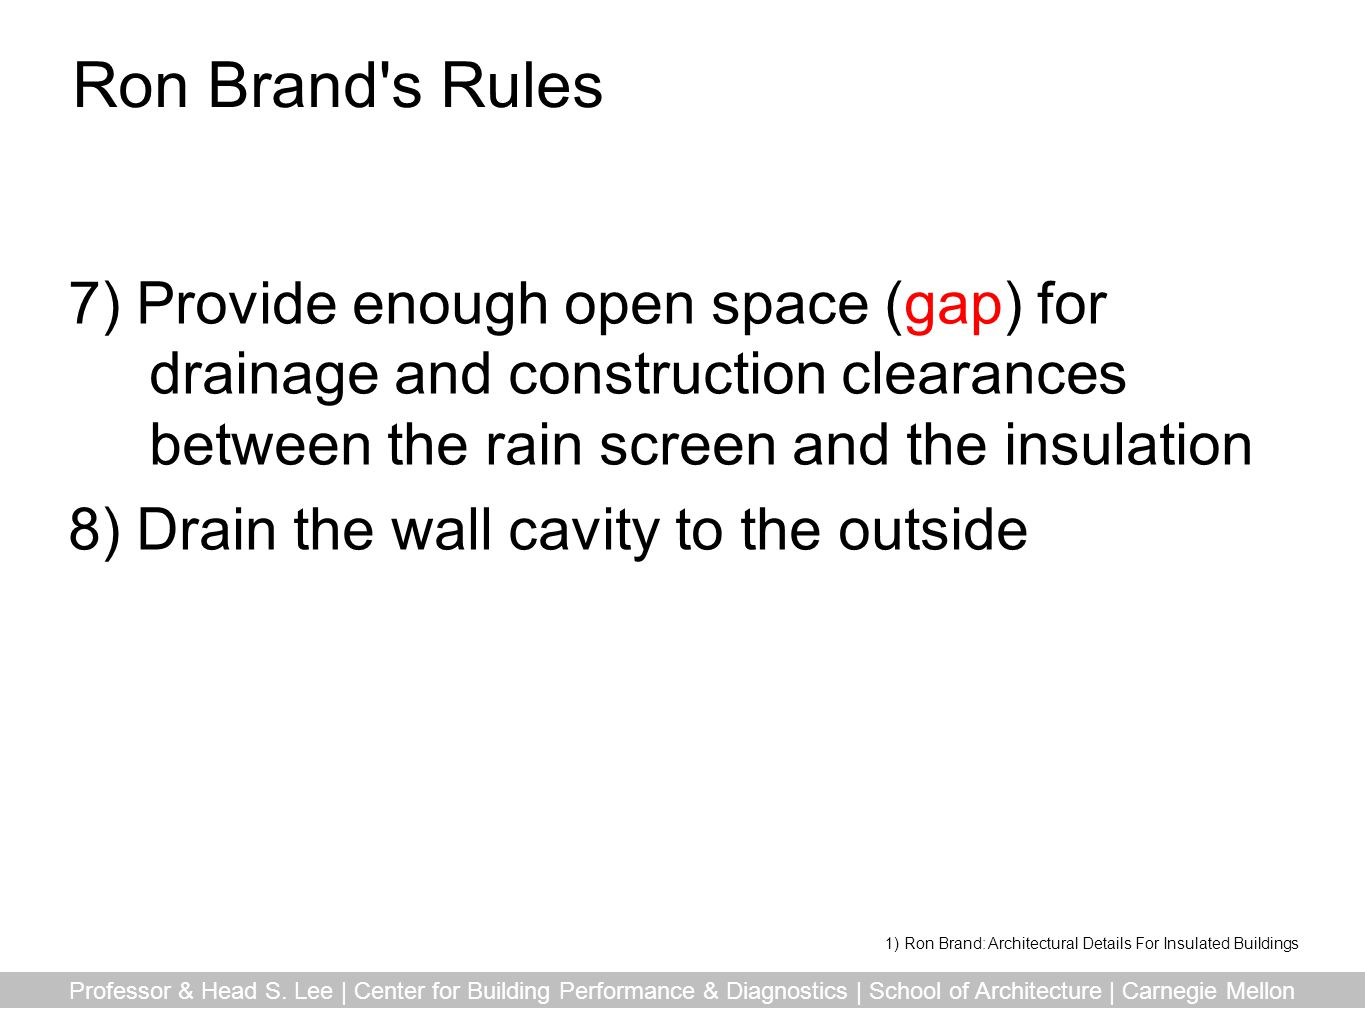 Ron Brand s Rules 7) Provide enough open space (gap) for drainage and construction clearances between the rain screen and the insulation.